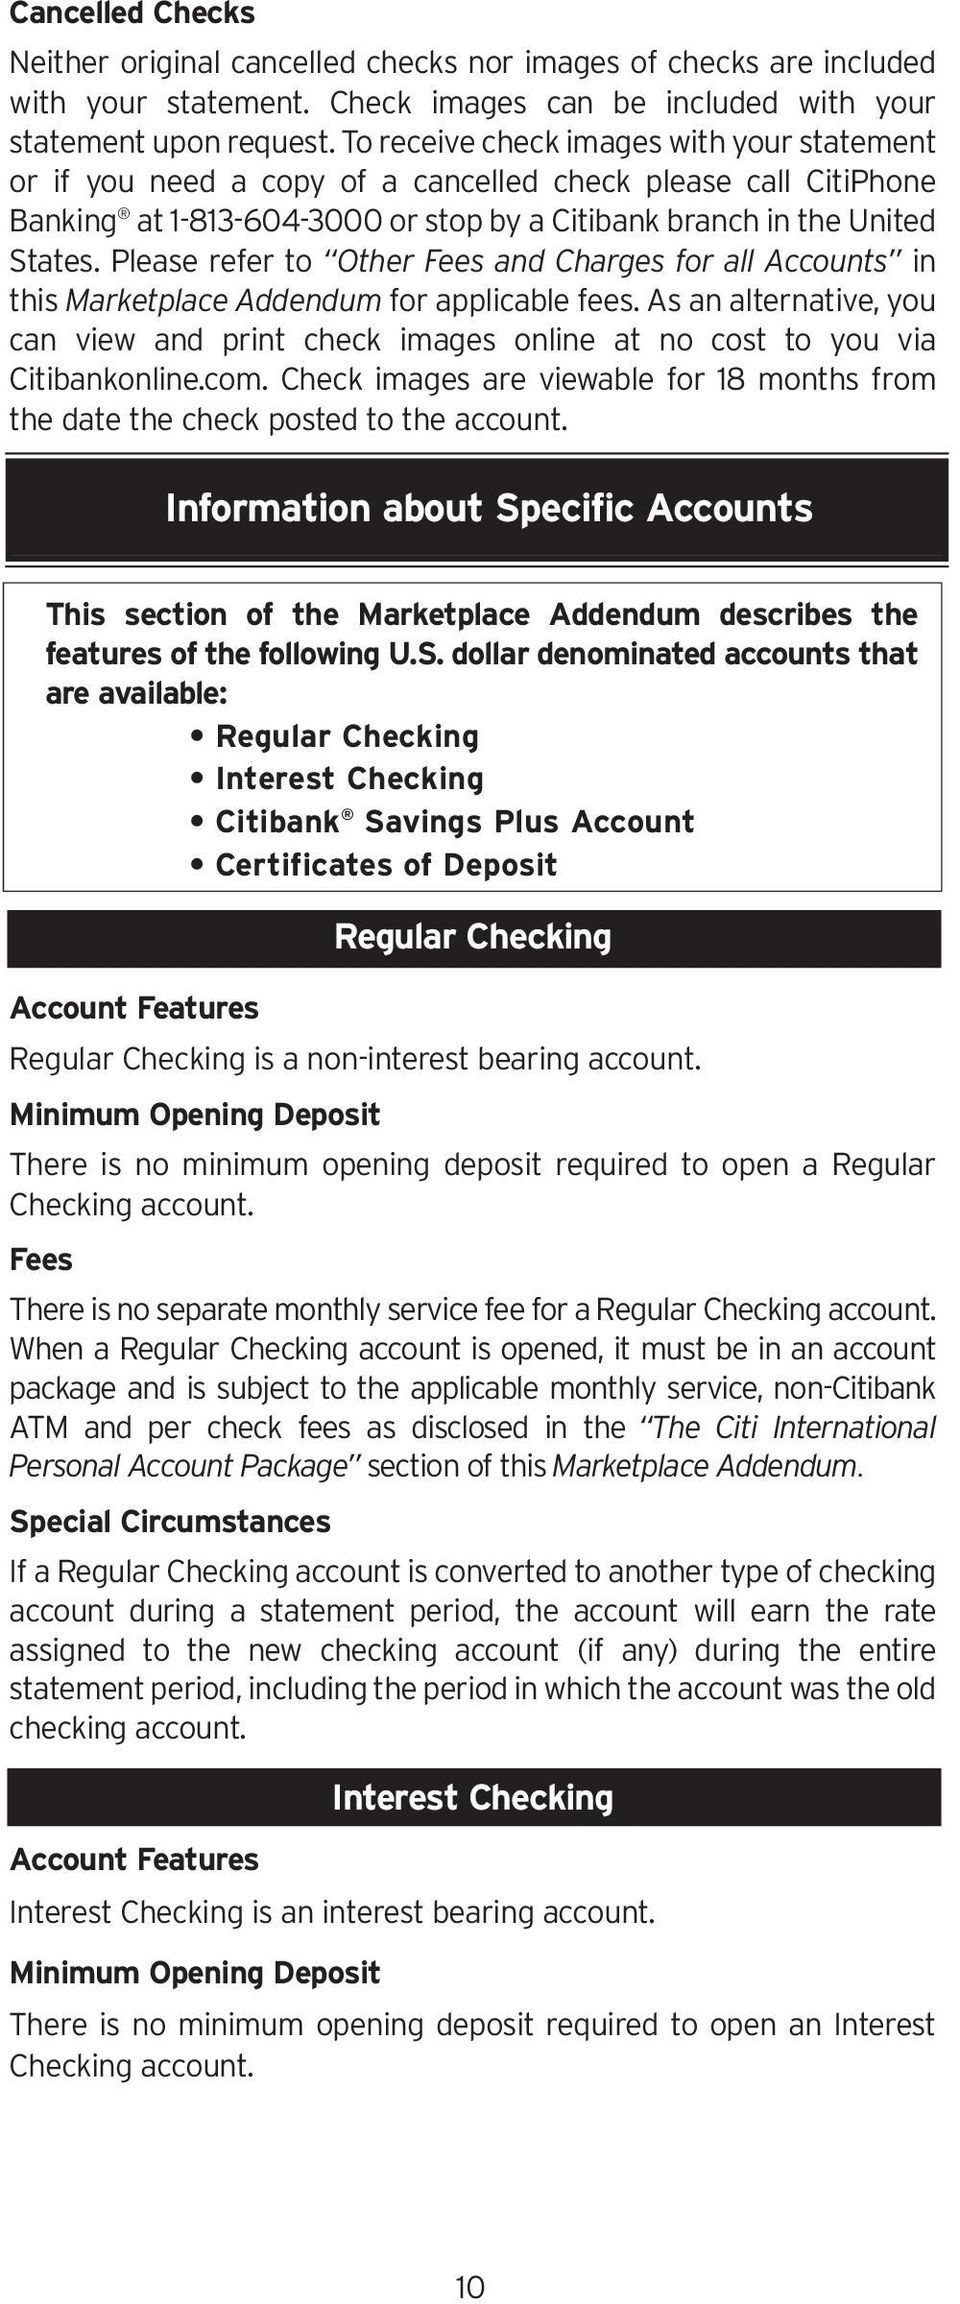 Please refer to Other Fees and Charges for all Accounts in this Marketplace Addendum for applicable fees.